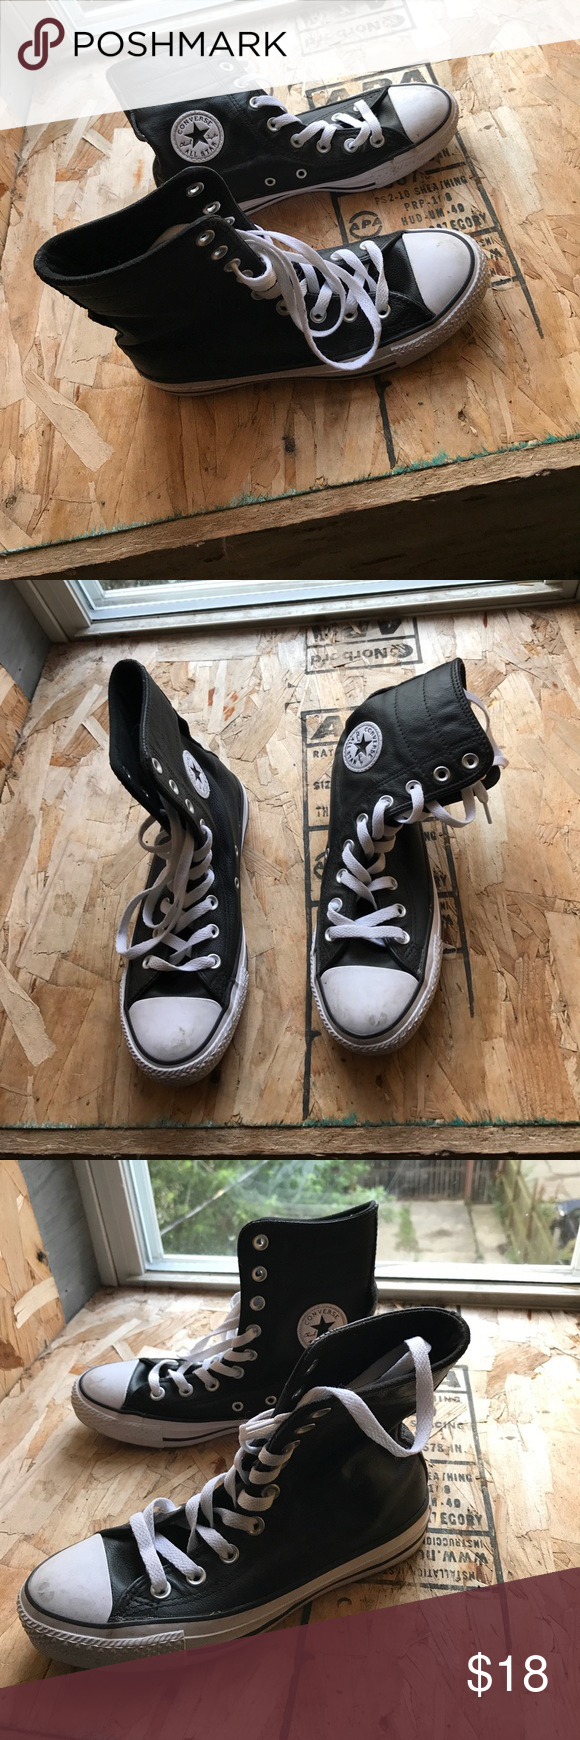 Black & White Converse High Top Converse. Needs to be wiped down. Great condition. Converse Shoes Sneakers